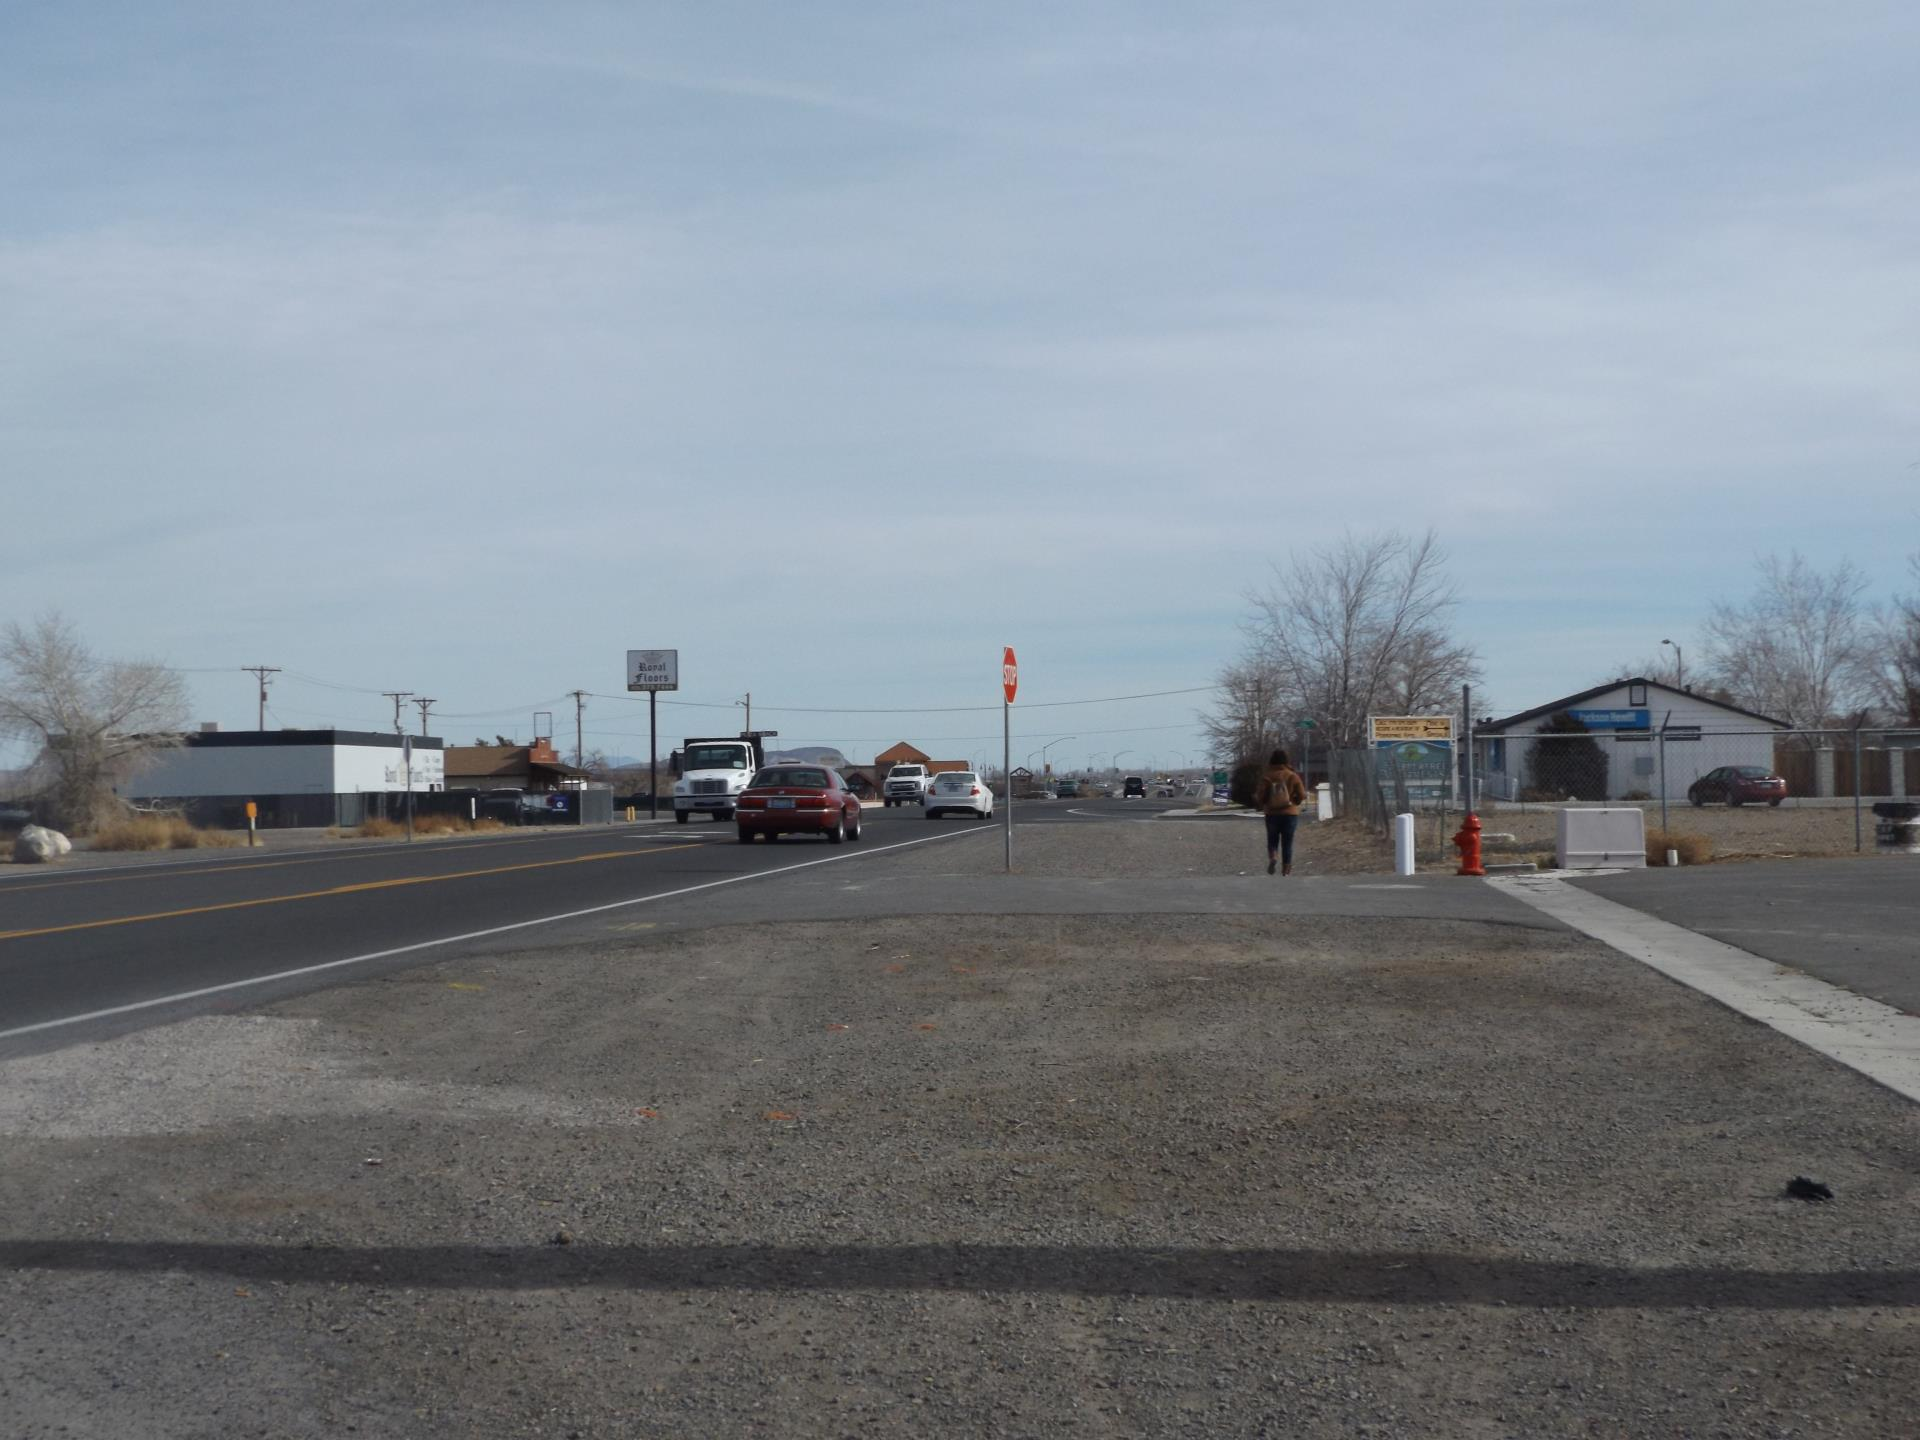 A photo of the Main Street sidewalk in Fernley, Nevada